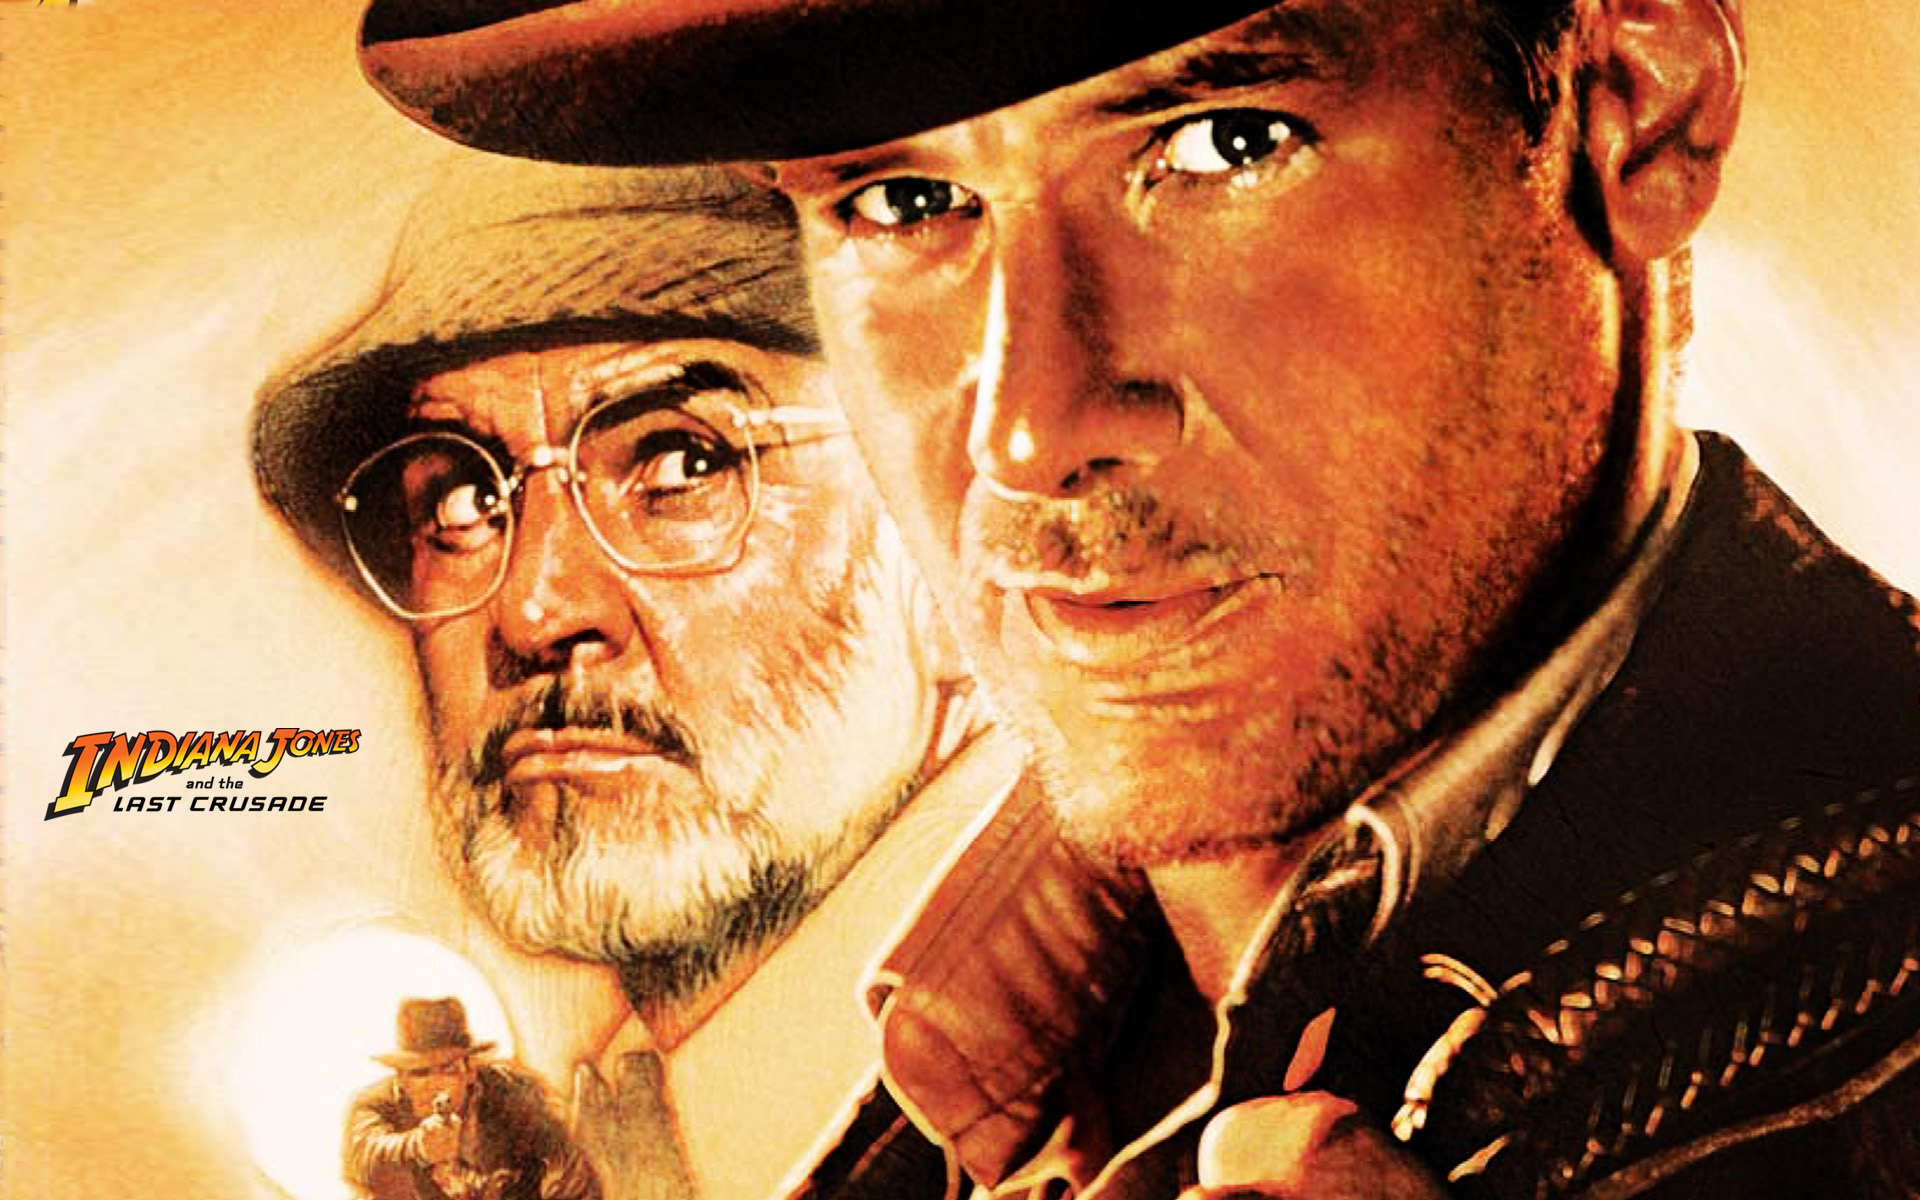 Après Star Wars, Disney rachète Indiana Jones mais pour en faire quoi ? On craint le pire... dans Films indiana_jones_and_the_last_crusade_wallpapers_8307